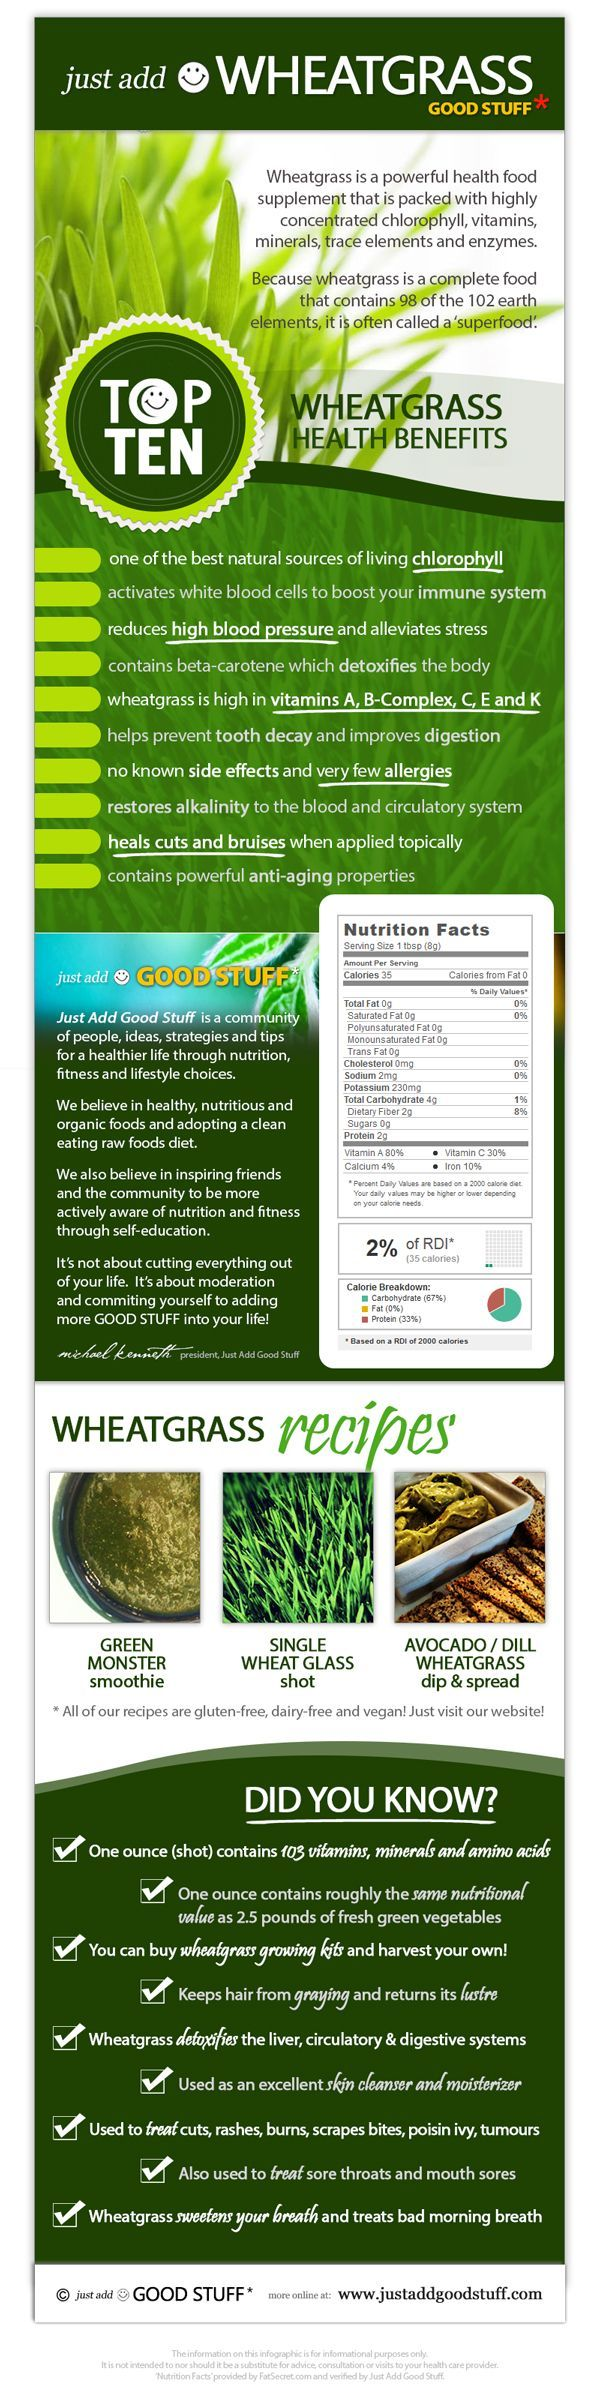 Just Add Wheatgrass Infographic detailing the top 10 wheatgrass health benefits, interesting figures and facts about wheat grass and excitin...